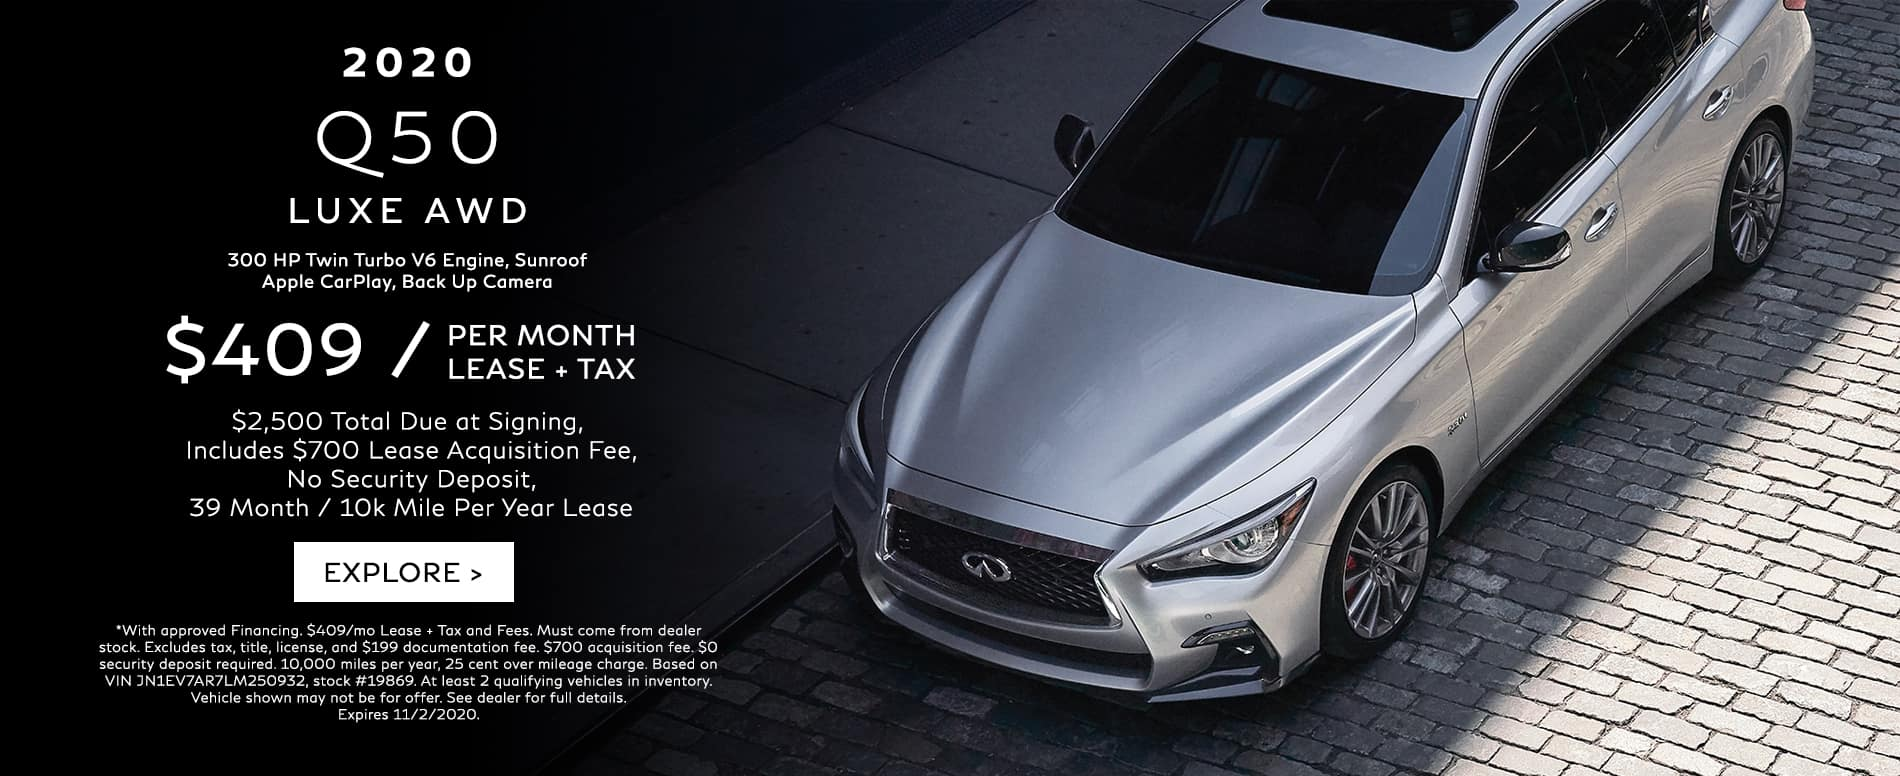 Lease a 2020 Q50 for $409/mo